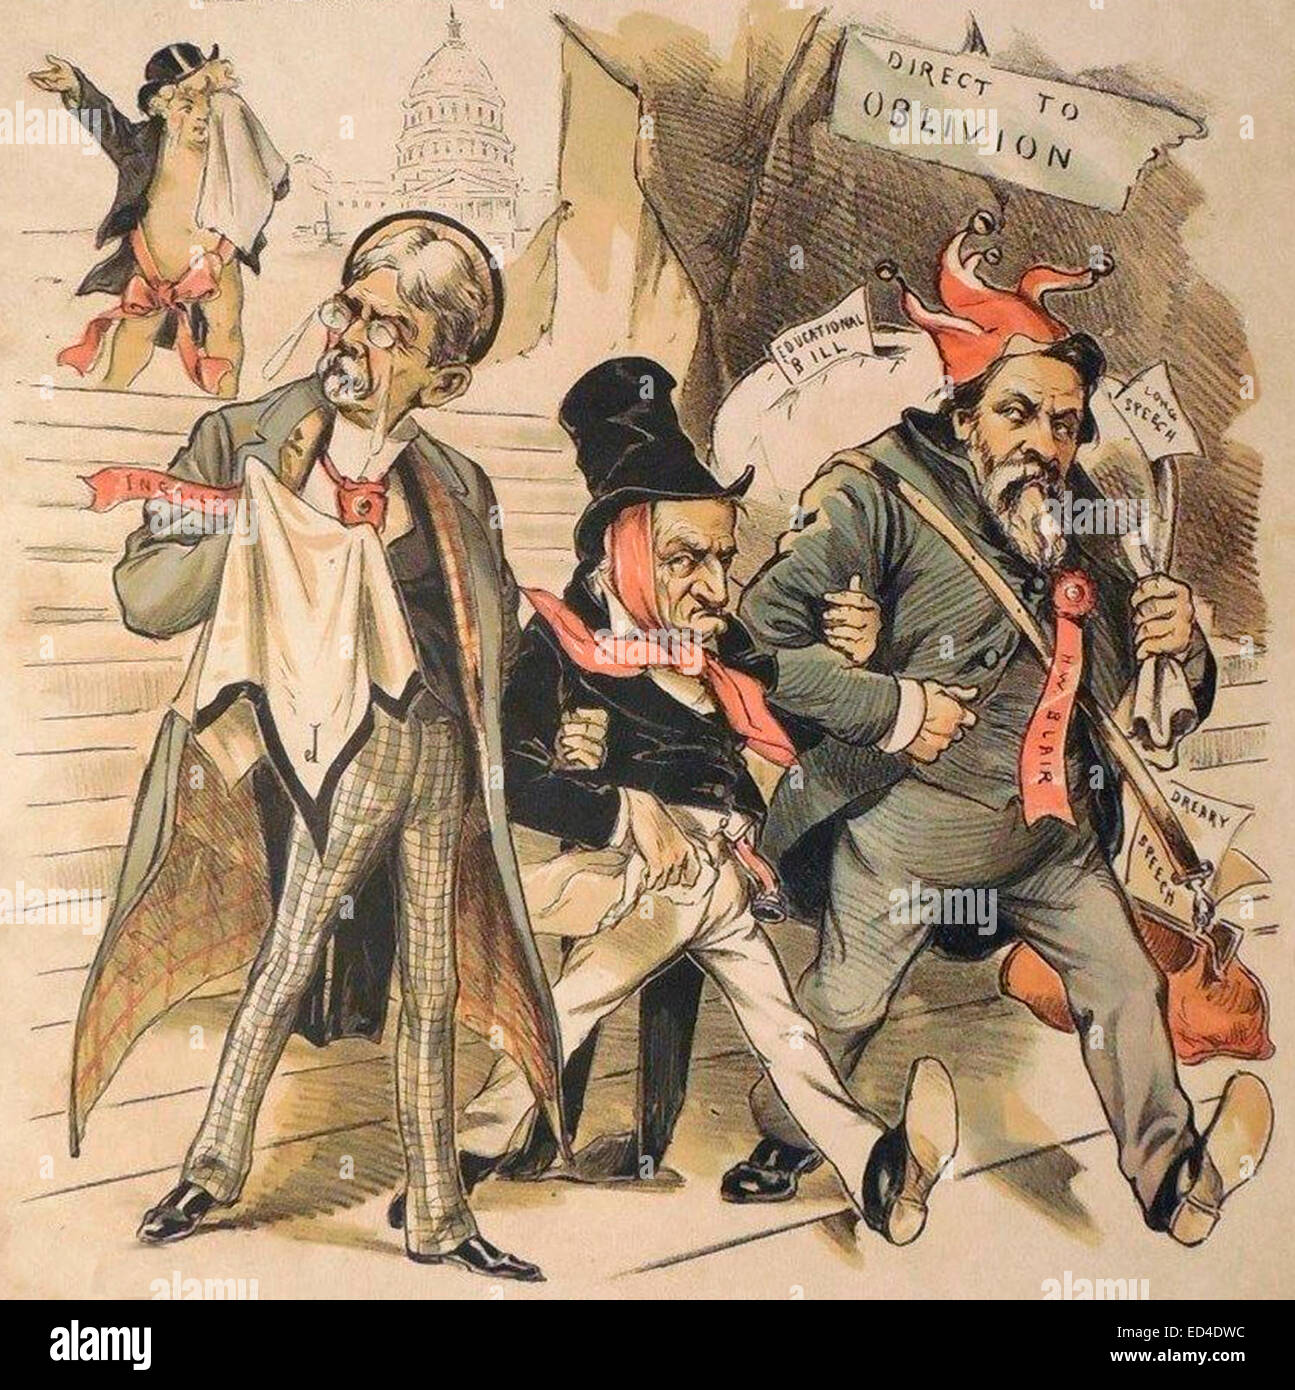 Politicians Expelled Washington to Oblivion, USA Political Cartoon 1890 - Stock Image